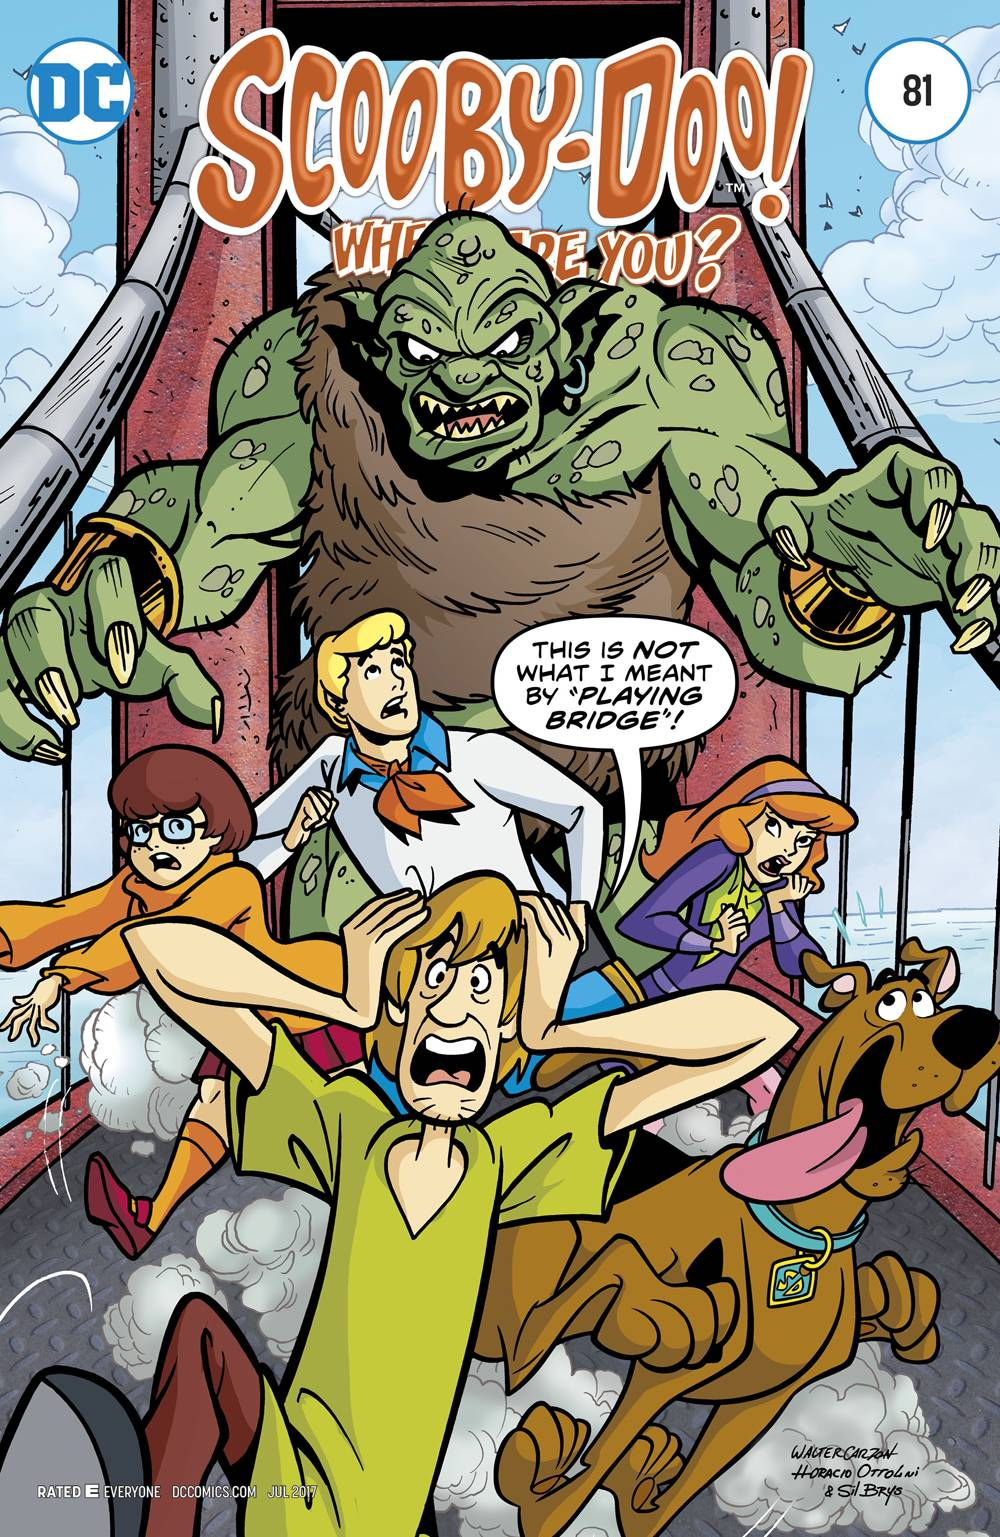 SCOOBY DOO WHERE ARE YOU 81.jpg